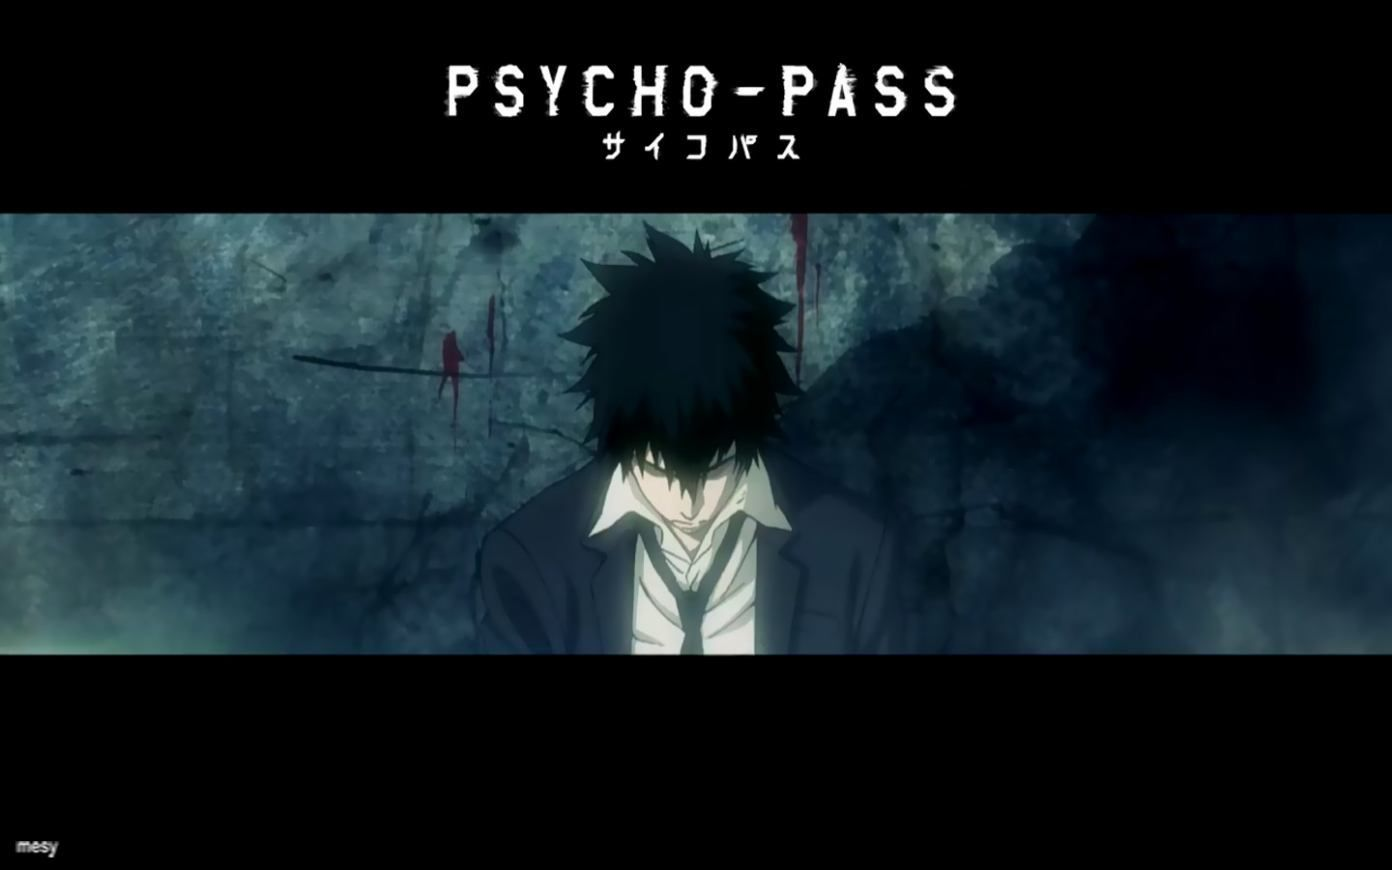 Psycho Pass Kougami Enforcer Dominator Anime Scifi You Can